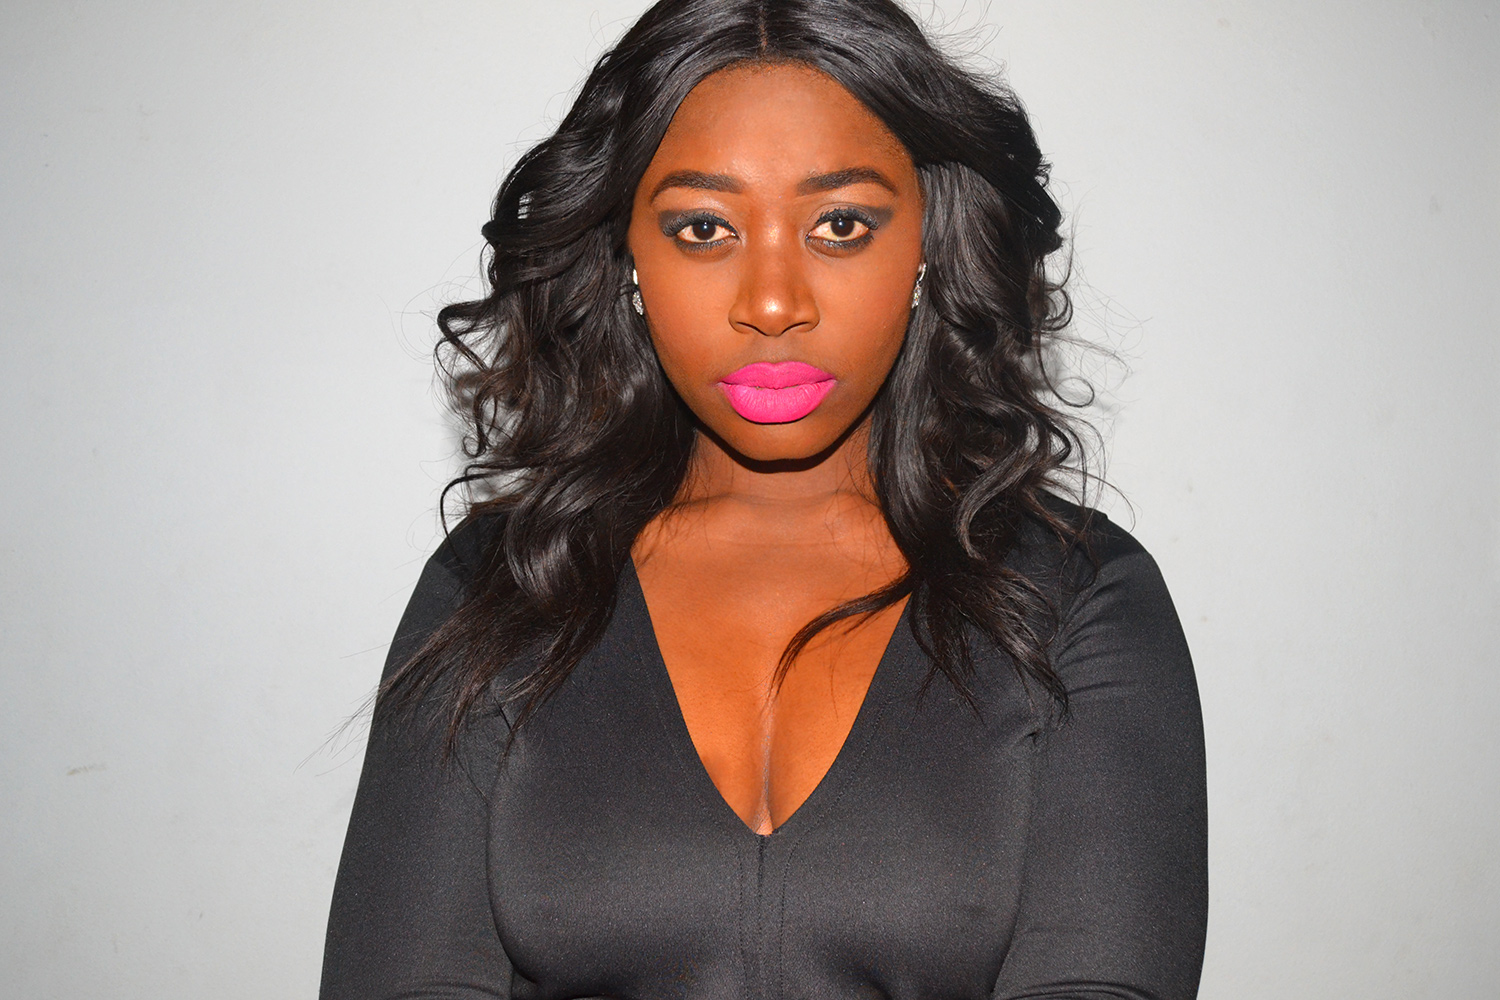 lOREAL-MATTE-FOUNDATION-DARK-SKIN